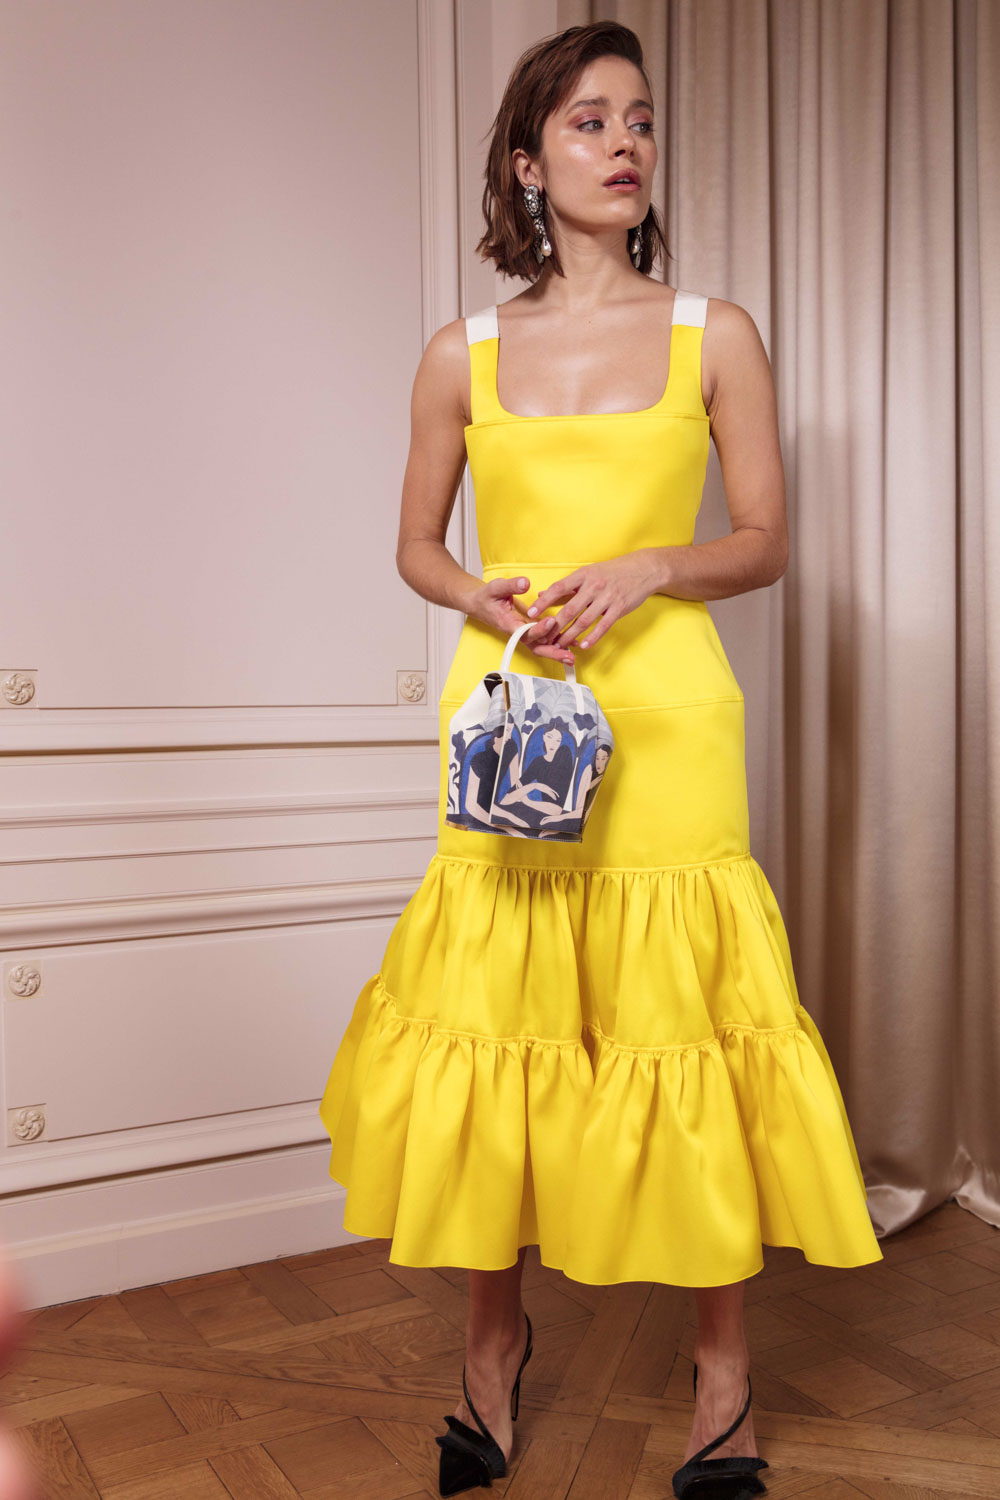 409a01bf7 boutiquelessuites.com - LesSuitesOnline buy Maison Rabih Kayrouz - Tiered  and ruched midi dress in canary yellow satin on our website